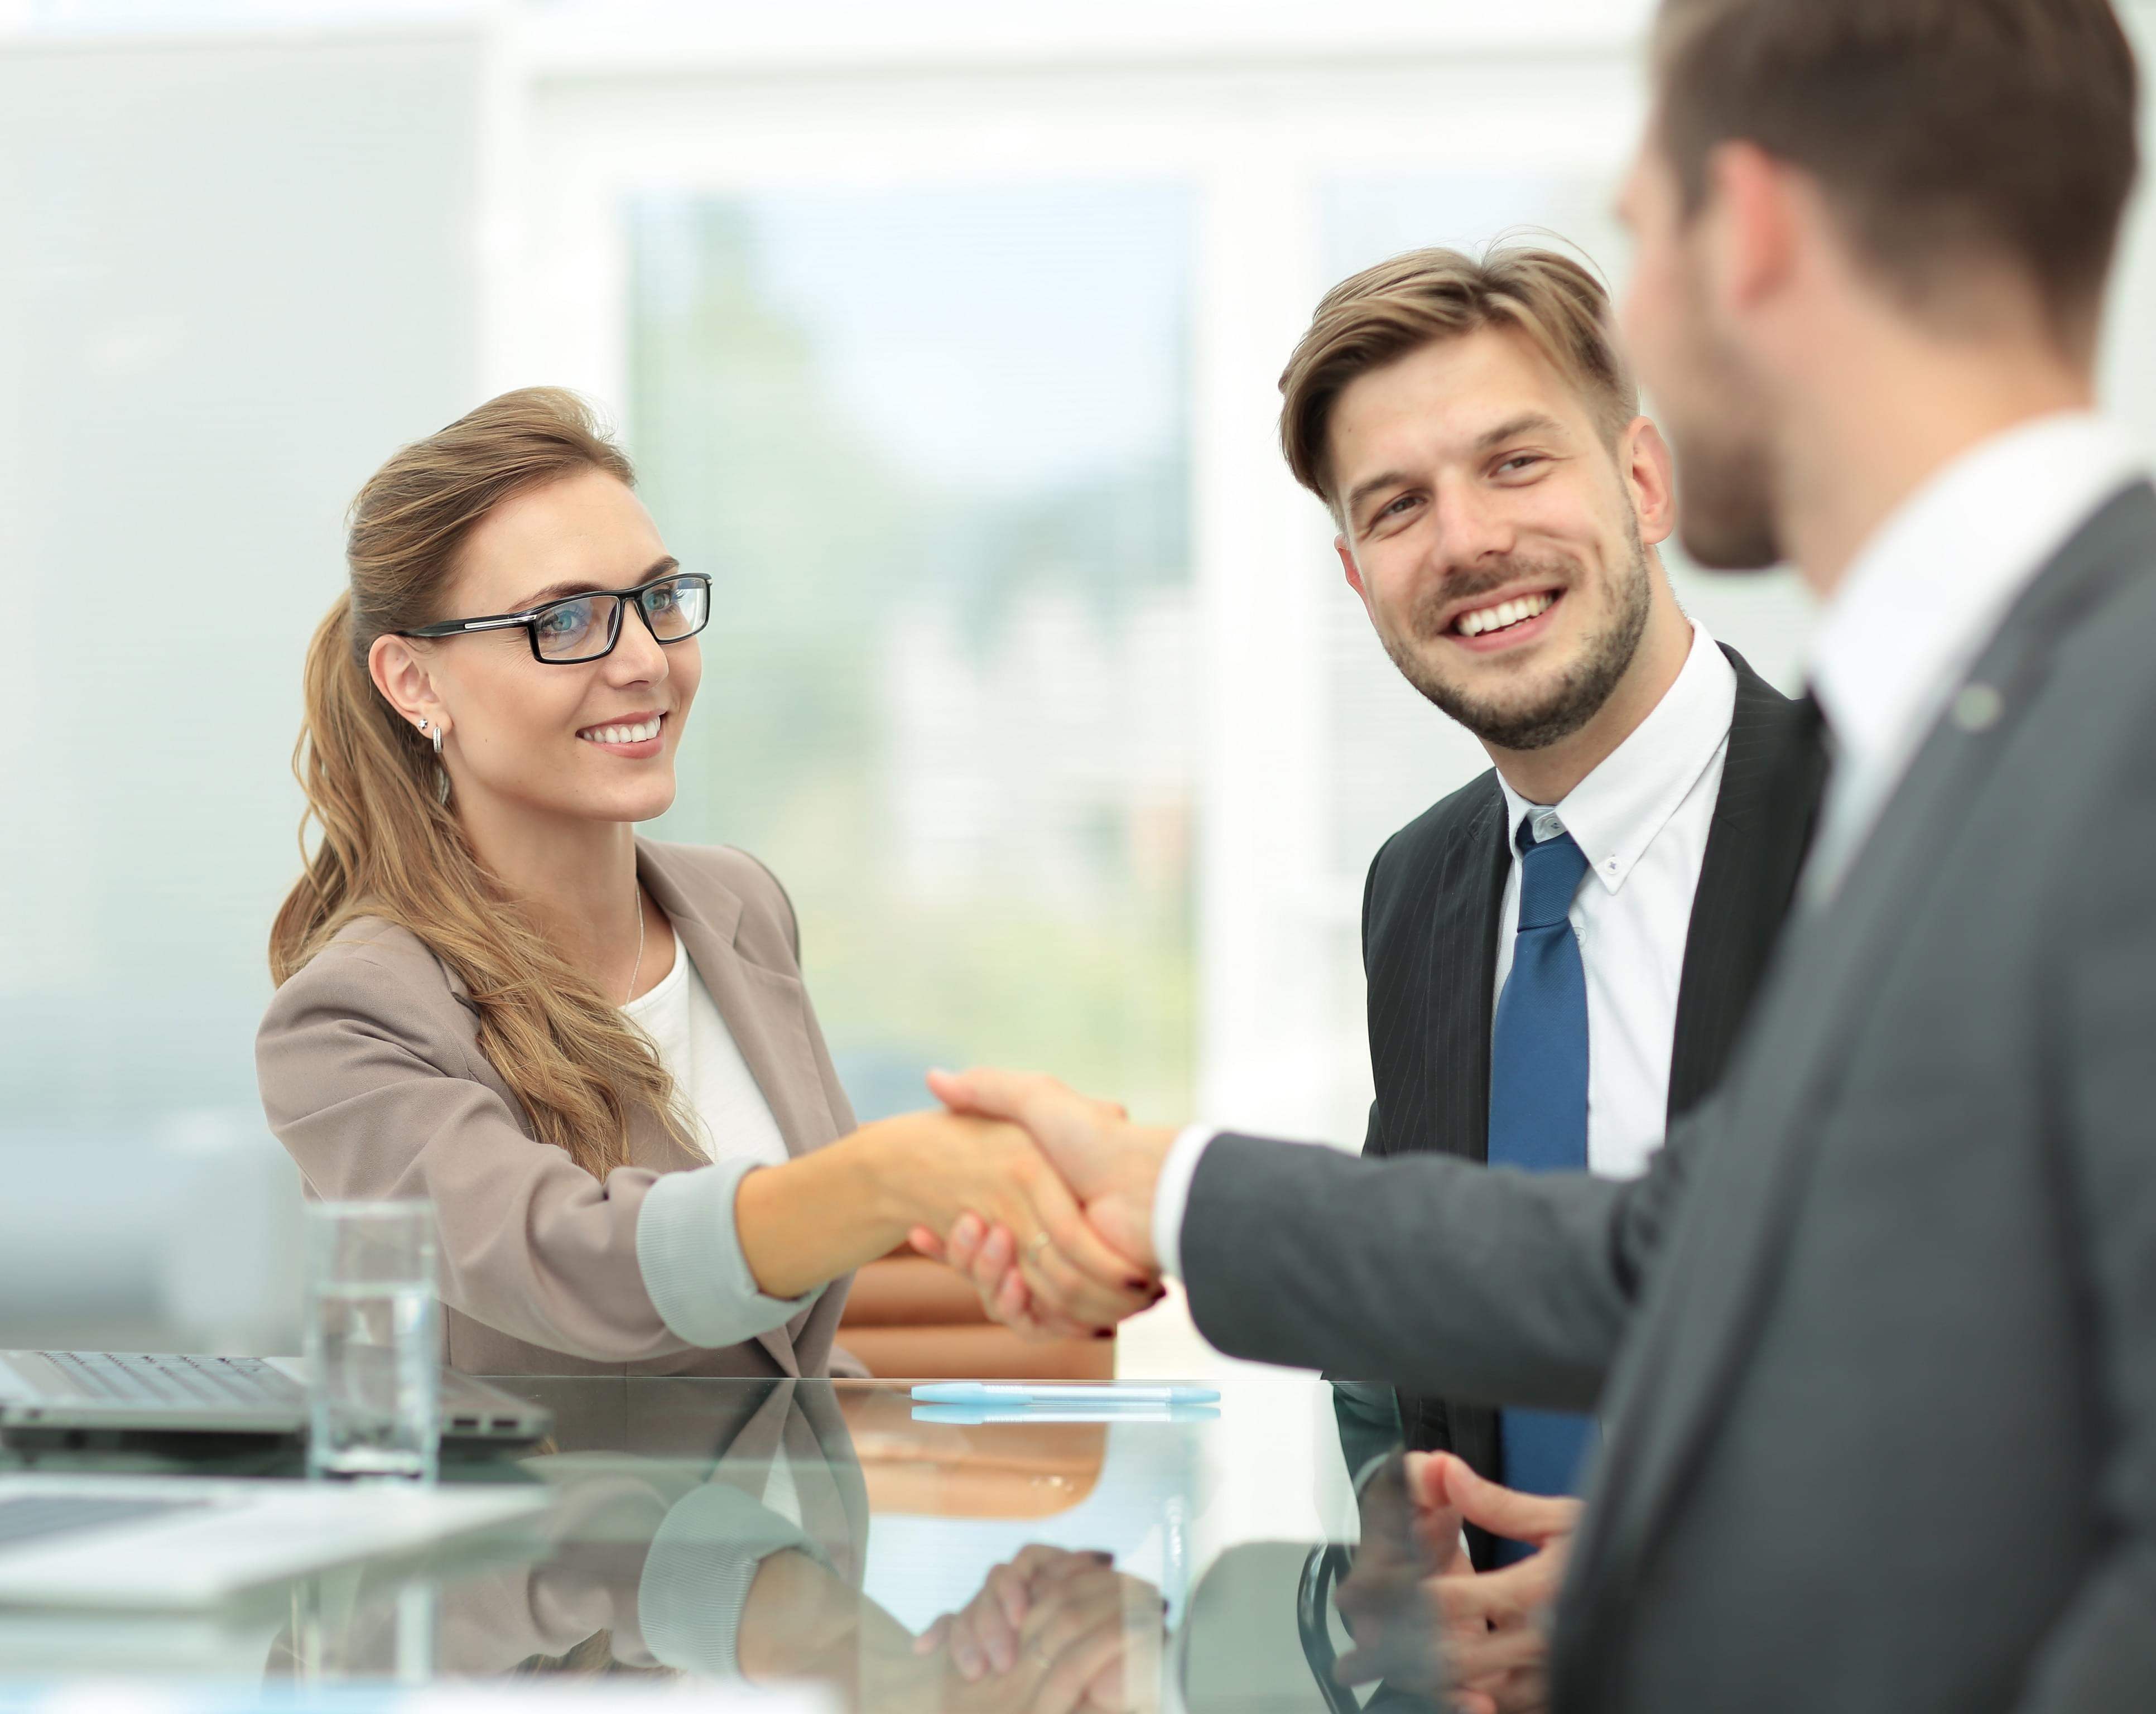 More Than Half of Employers Have Not Hired Someone Because of Their Appearance?